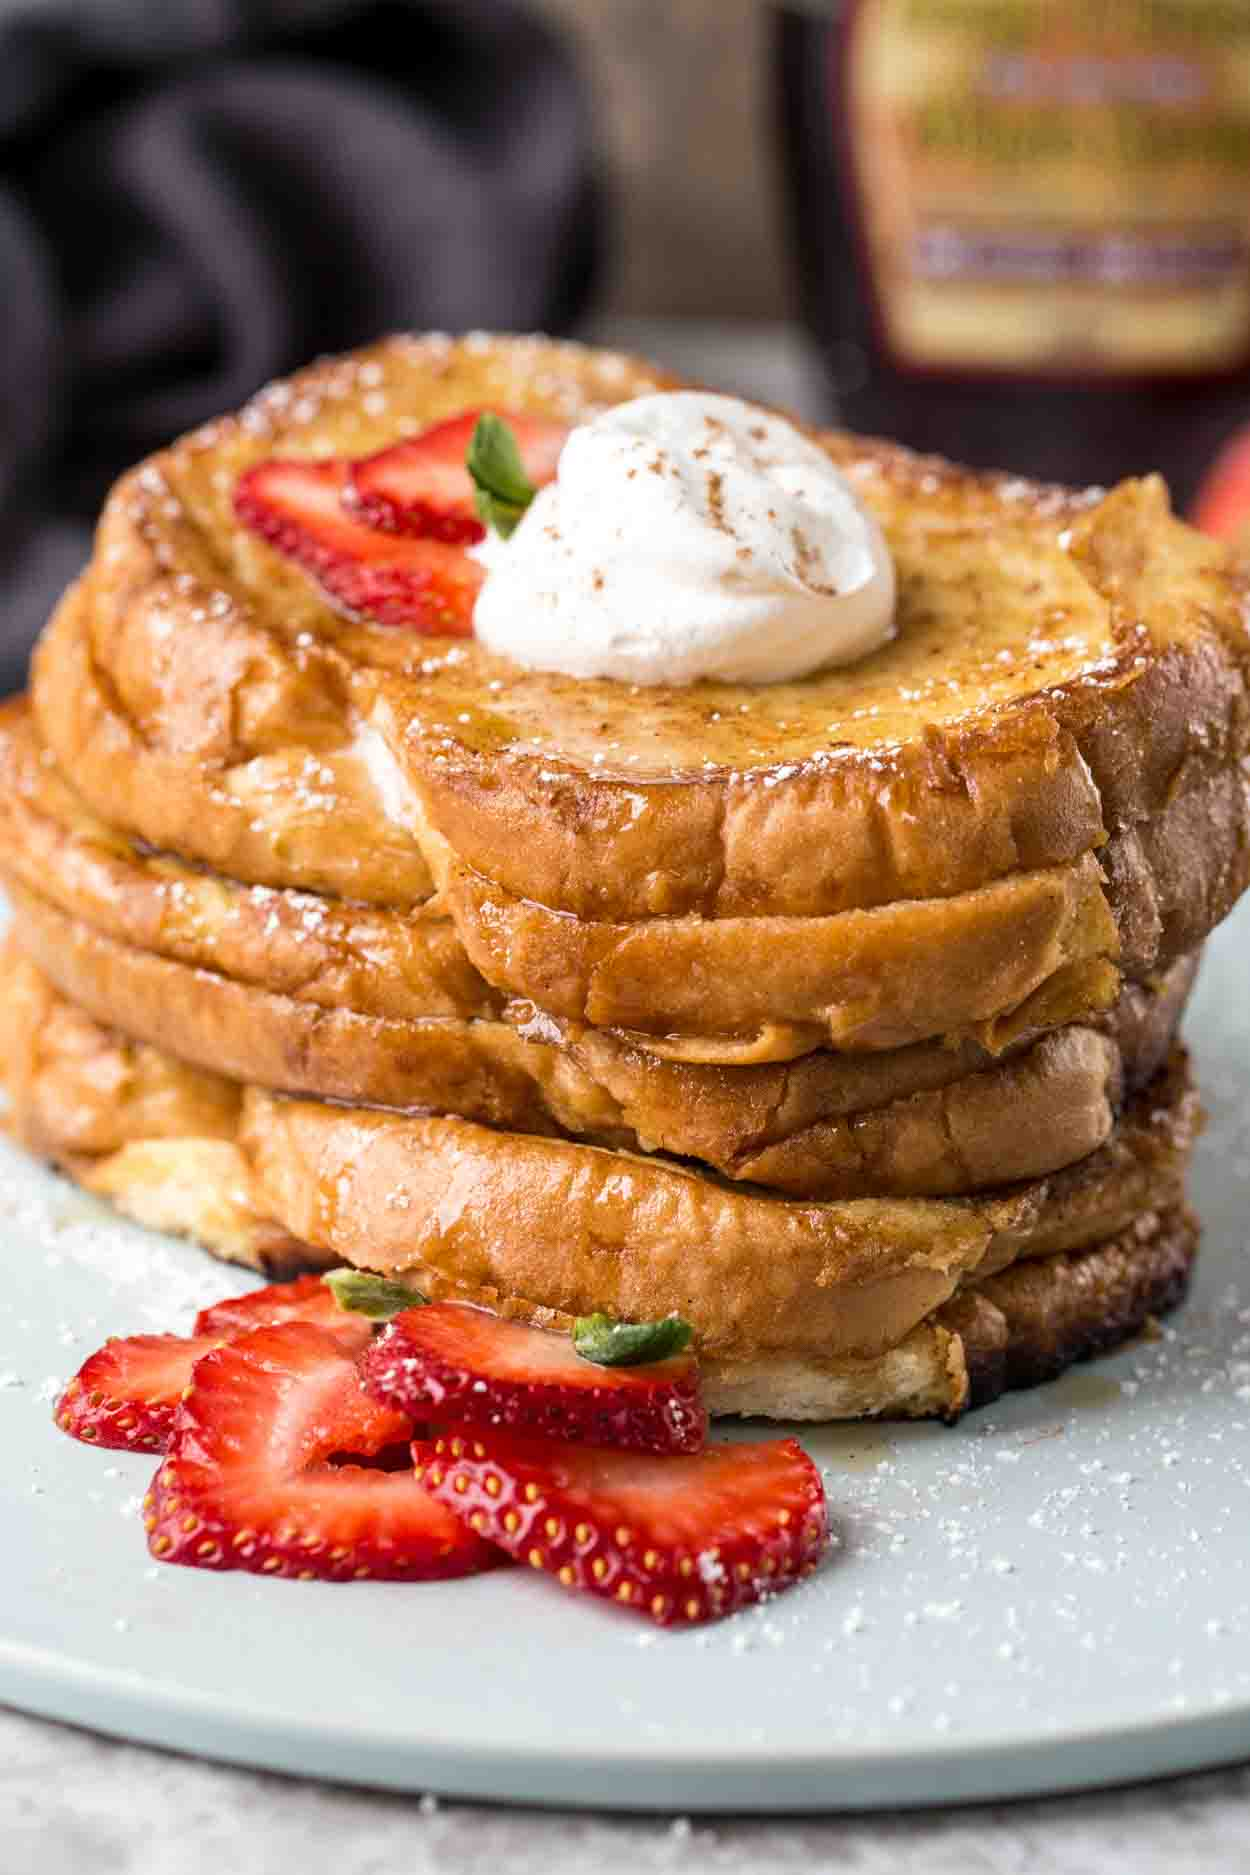 Strawberry cheesecake stuffed french toast recipe, topped with whipped cream and fresh strawberries.